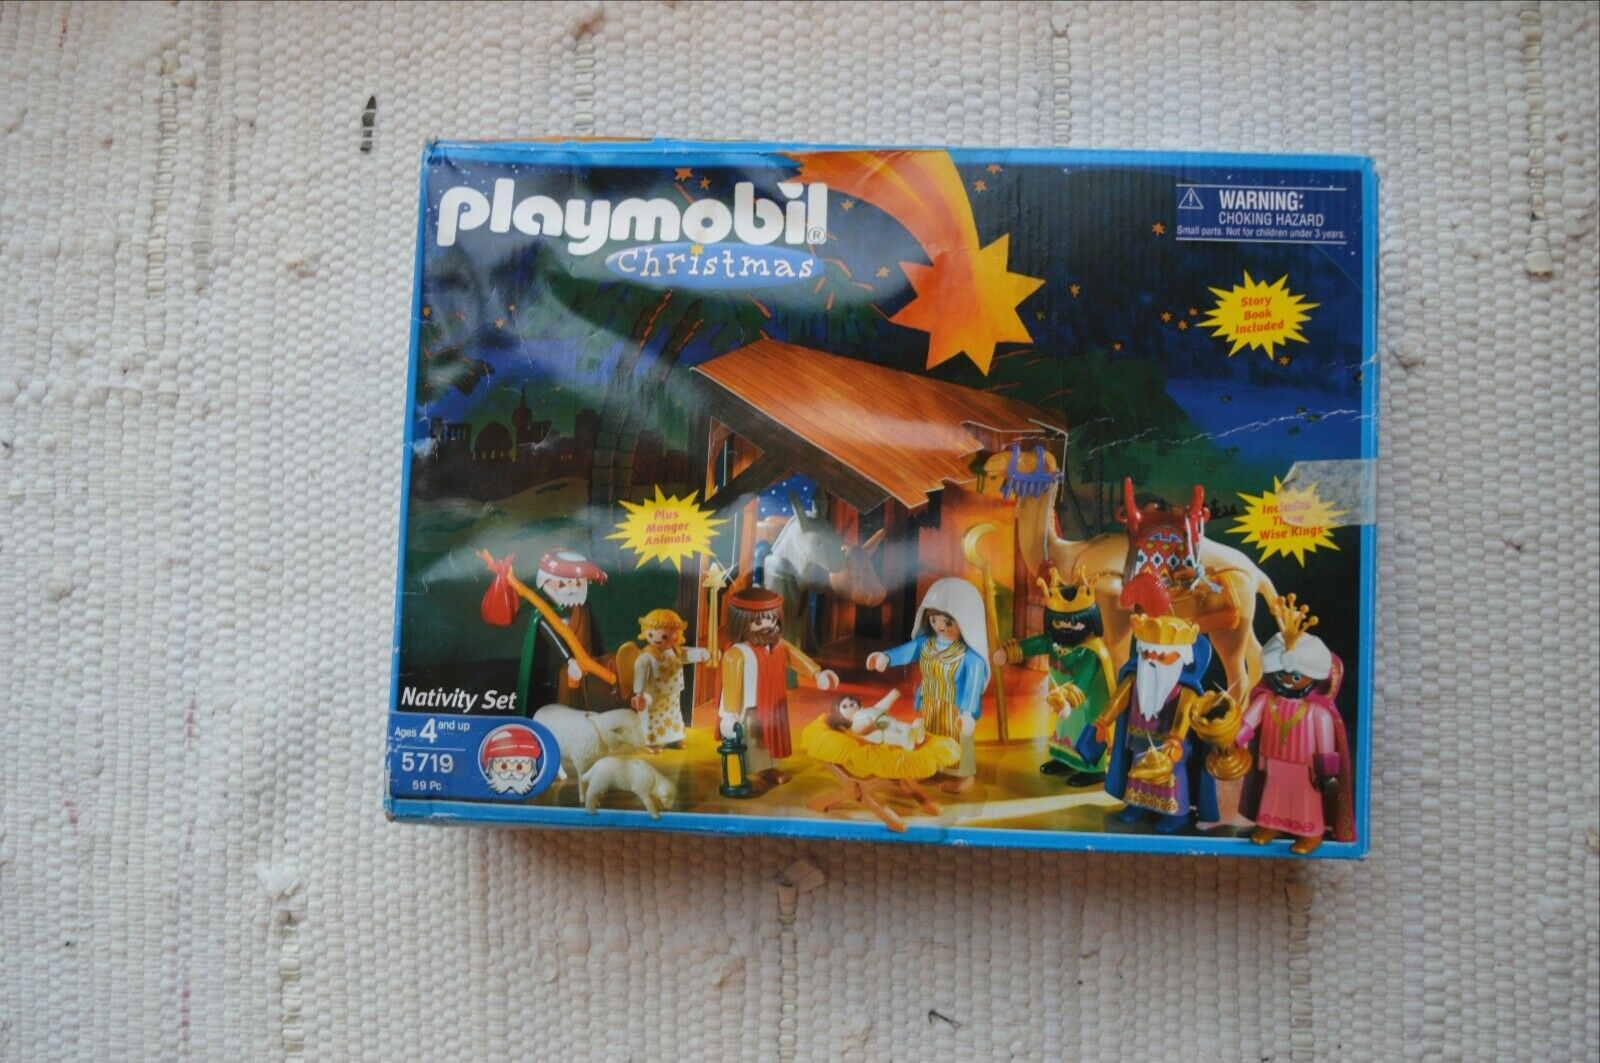 Playmobil 5719 Christmas Nativity Set 59 pc. ages 4+ up Education Complete Set